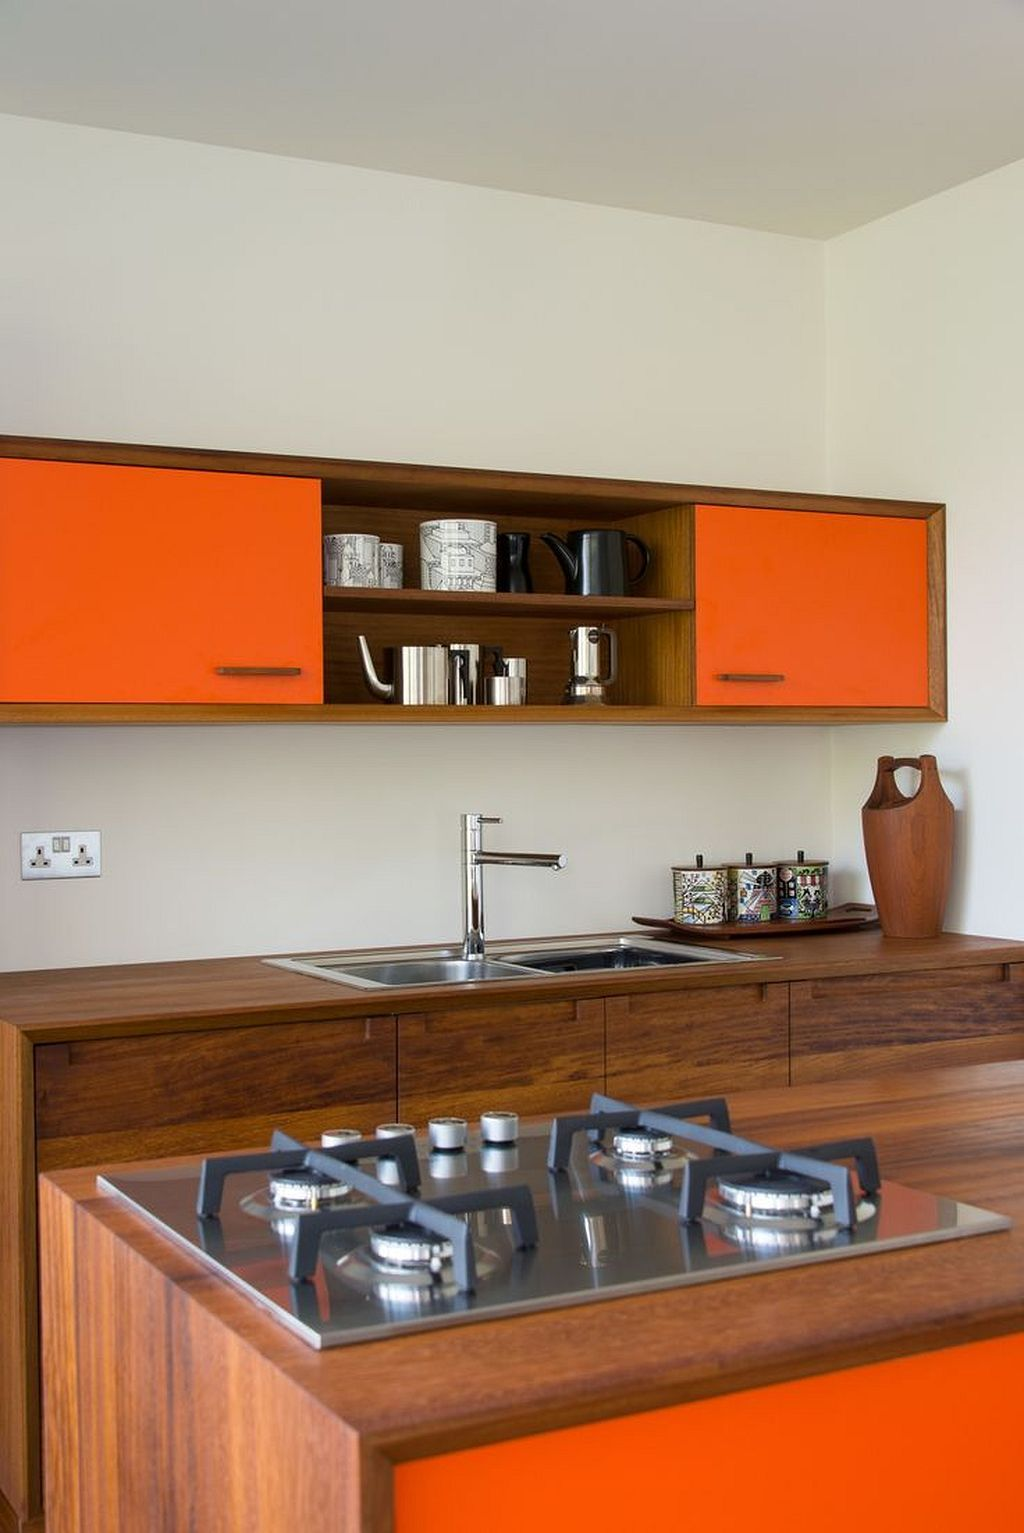 Lowes Walnut Kitchen Cabinets 40 43 Awesome Colorful Painted Cabinet Ideas Furniture